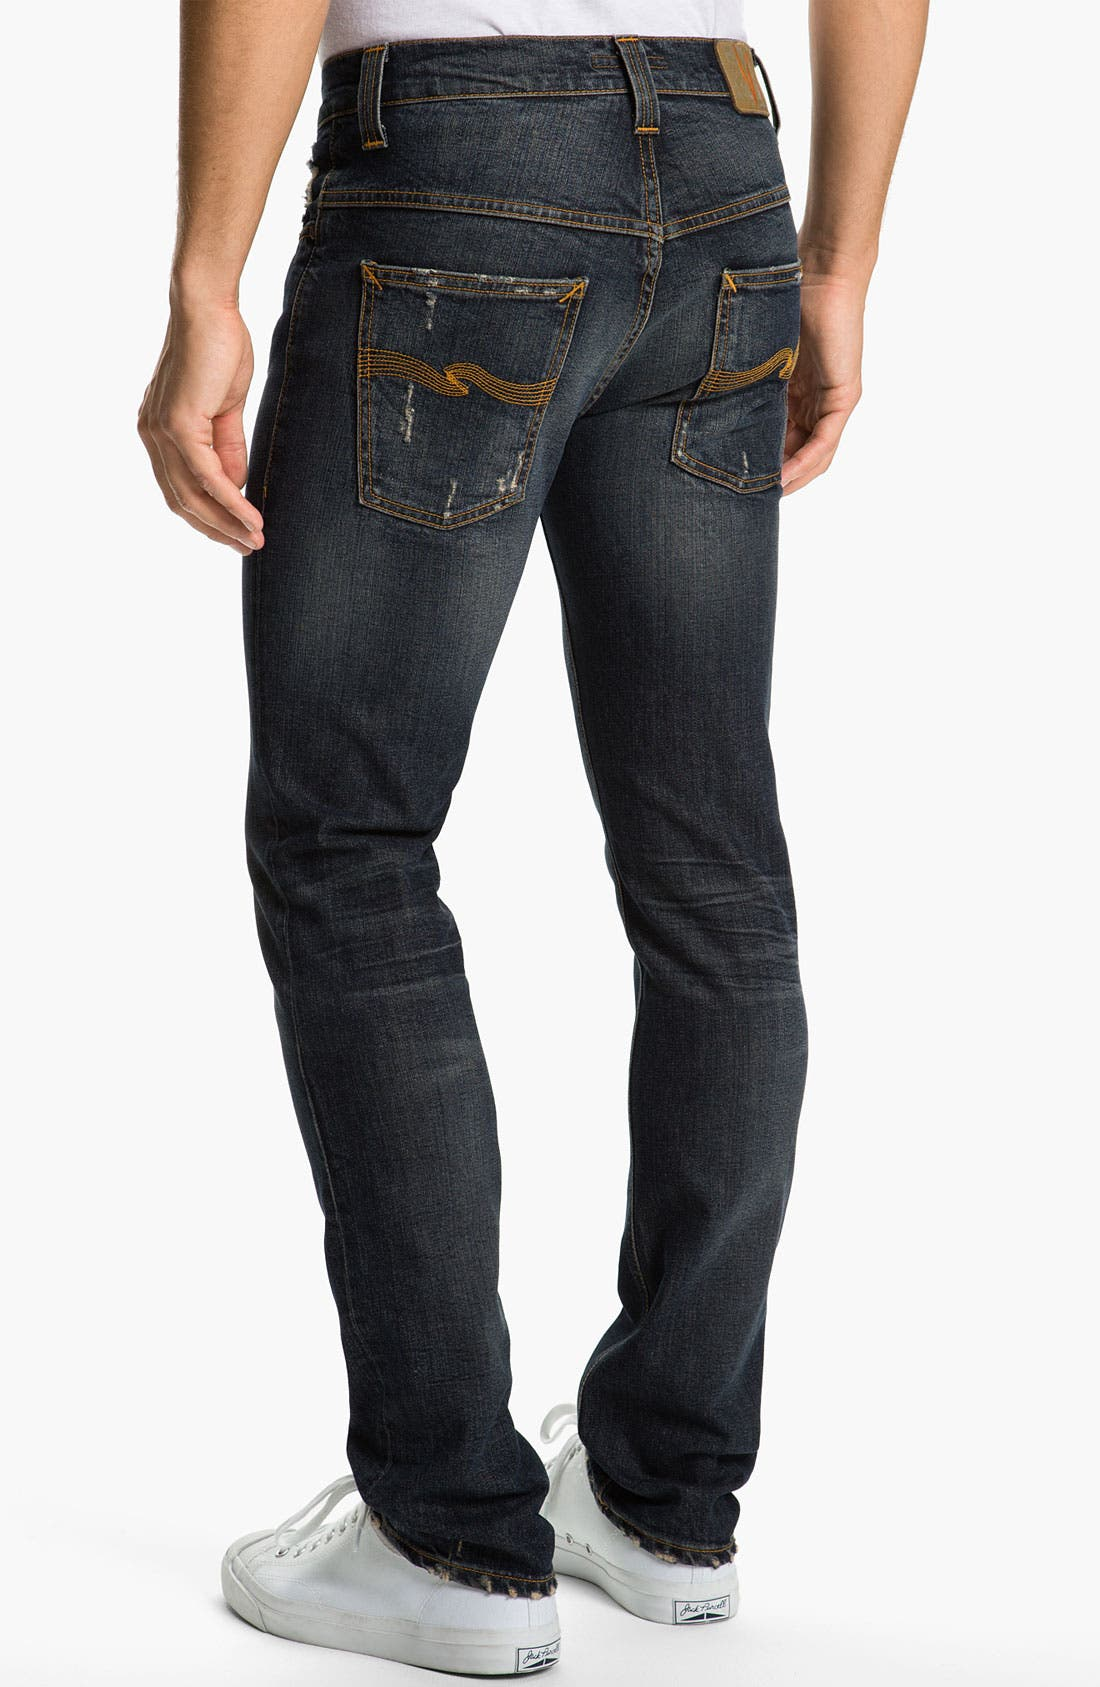 Alternate Image 1 Selected - Nudie 'Thin Fin' Skinny Leg Jeans (Organic Well Used)